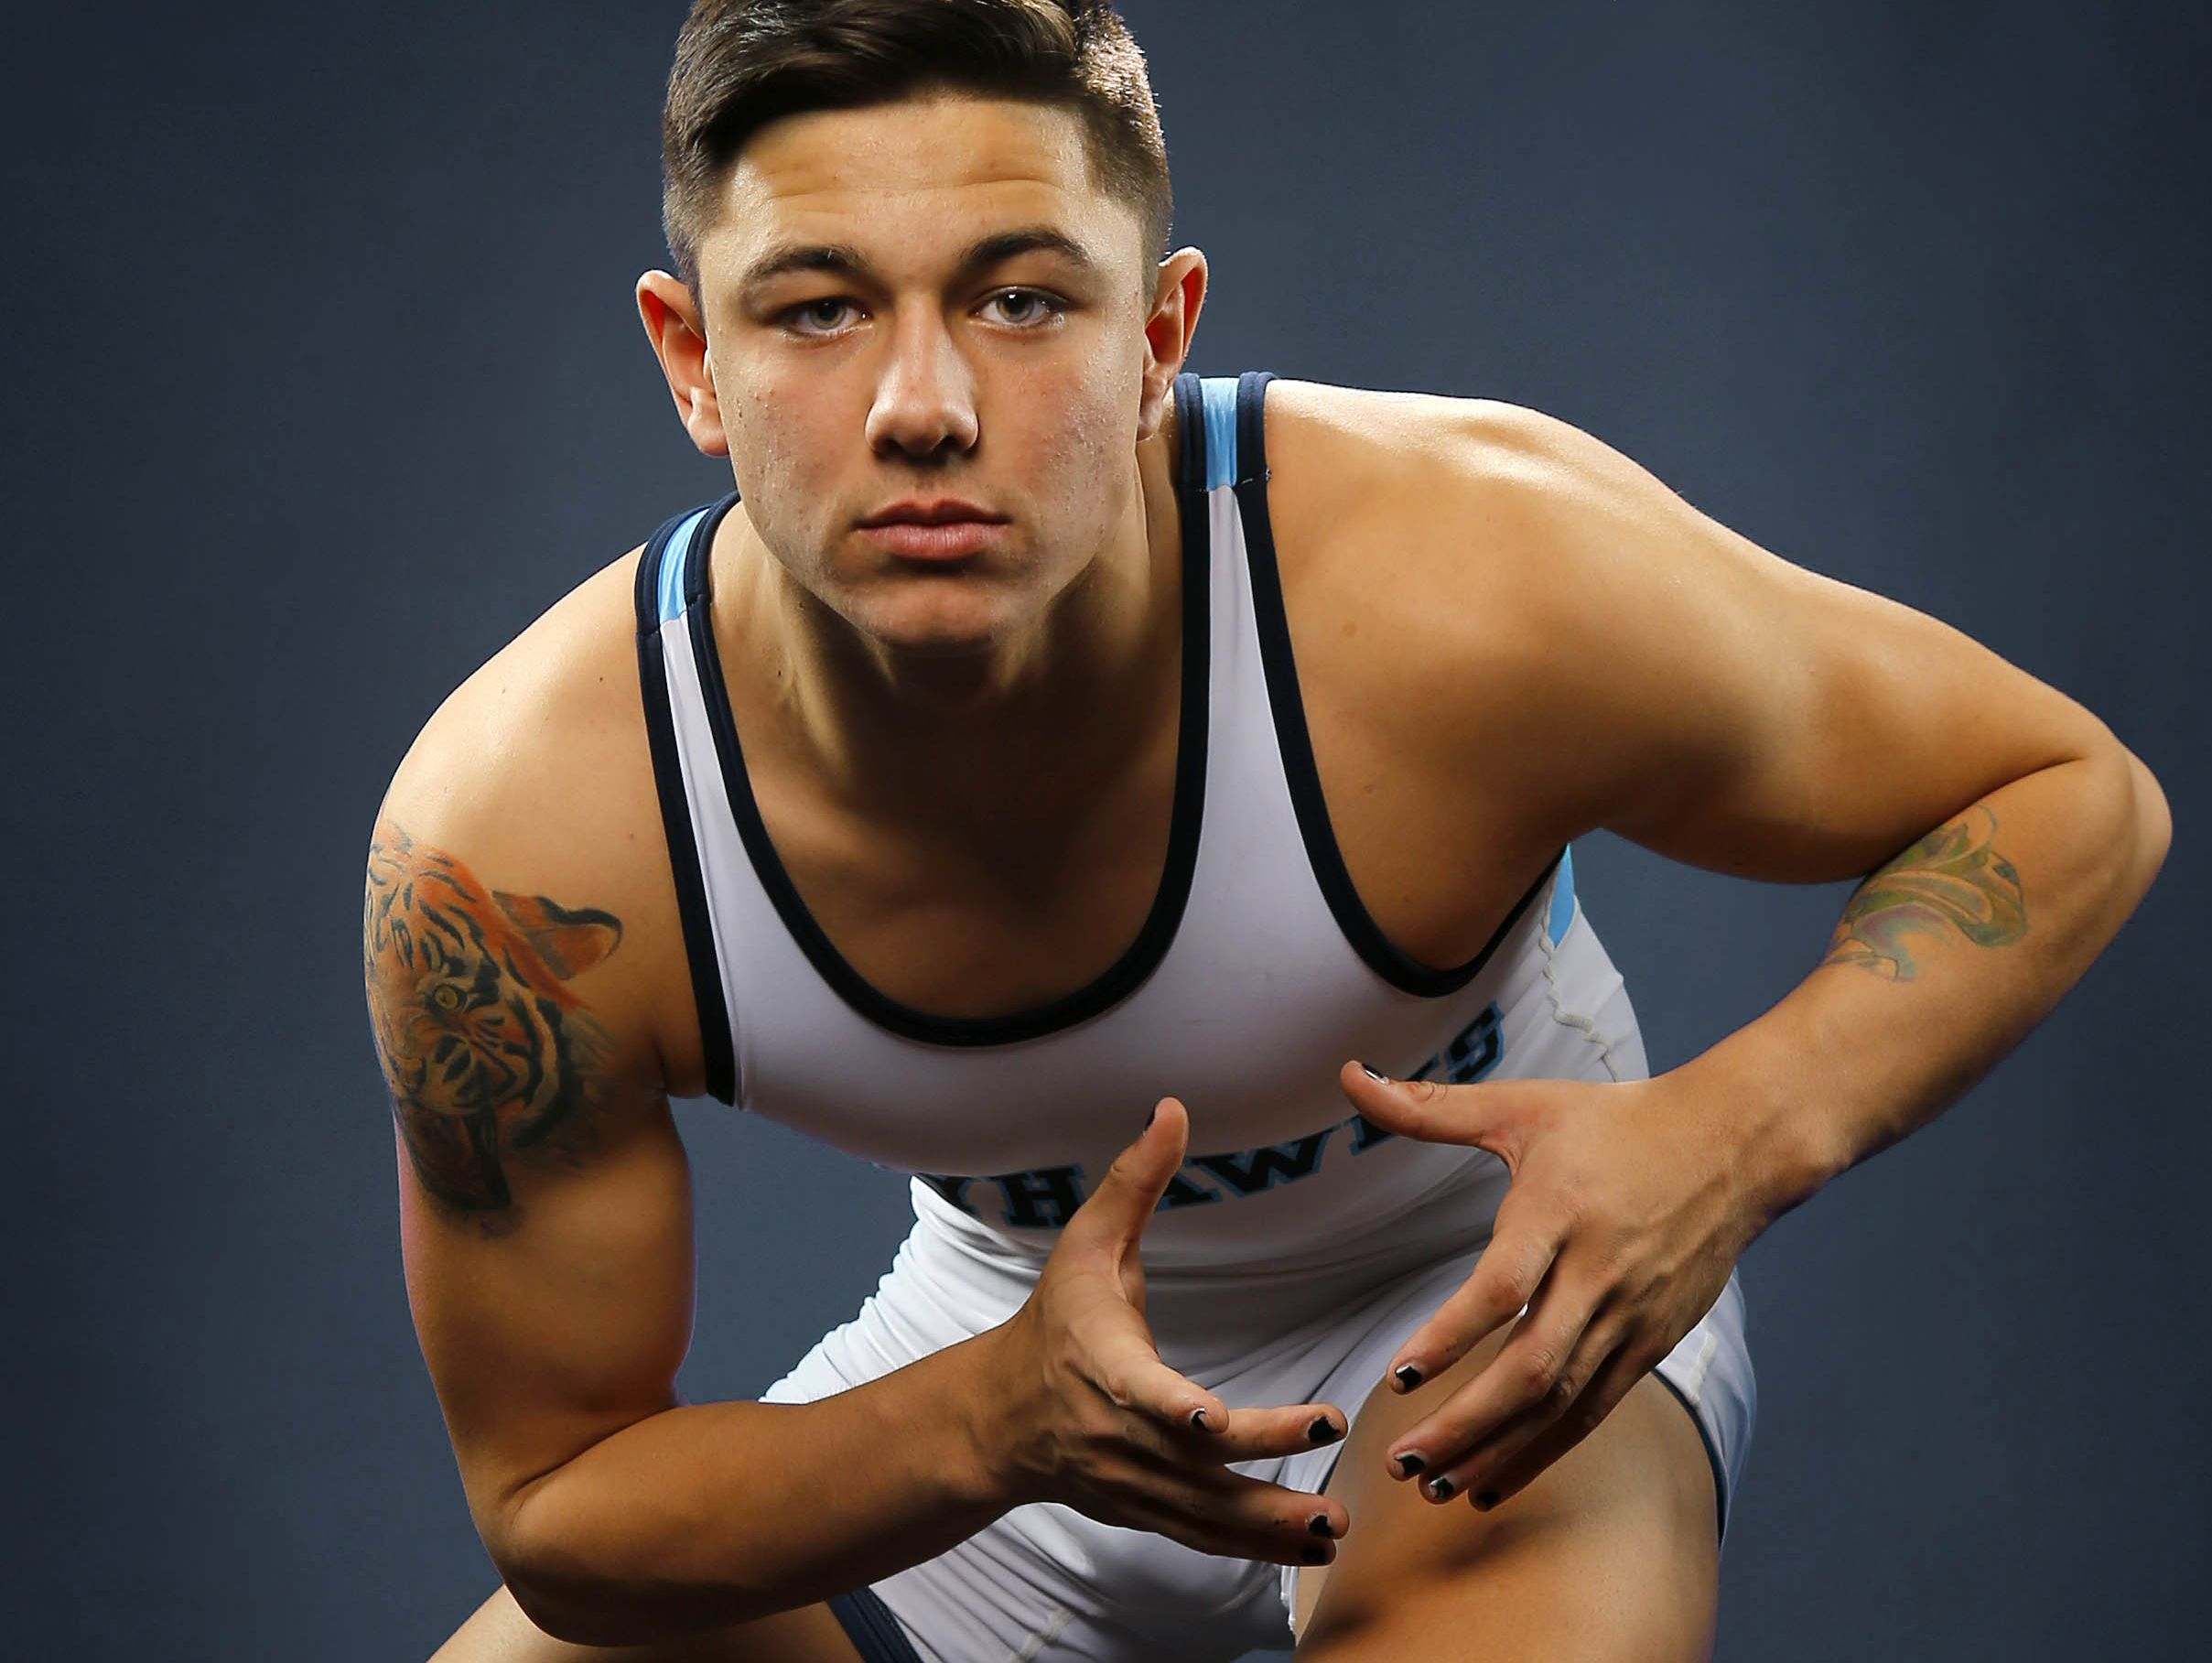 Glendale Deer Valley wrestler Jacob Swift is the Arizona Sports Awards January Athlete of the Month runner-up presented by La-Z-Boy Furniture Galleries.